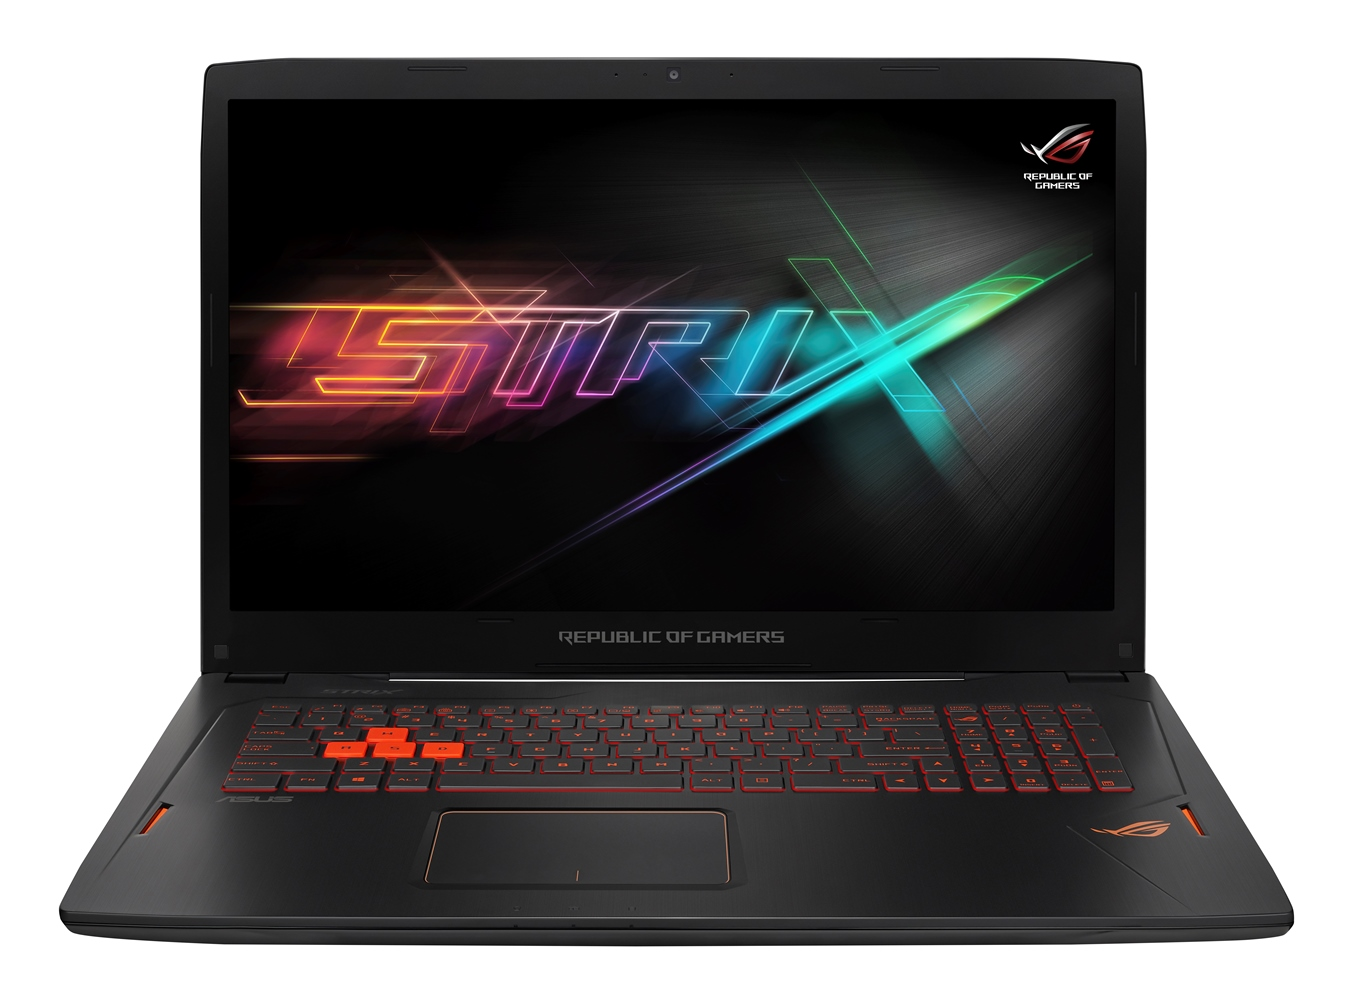 "ASUS GL702VS-BA002T i7-7700HQ/16GB/256GB M.2 SSD+1TB 7200 ot./GeForce GTX1070/17,3"" FHD IPS matný/W10 Home/Black"